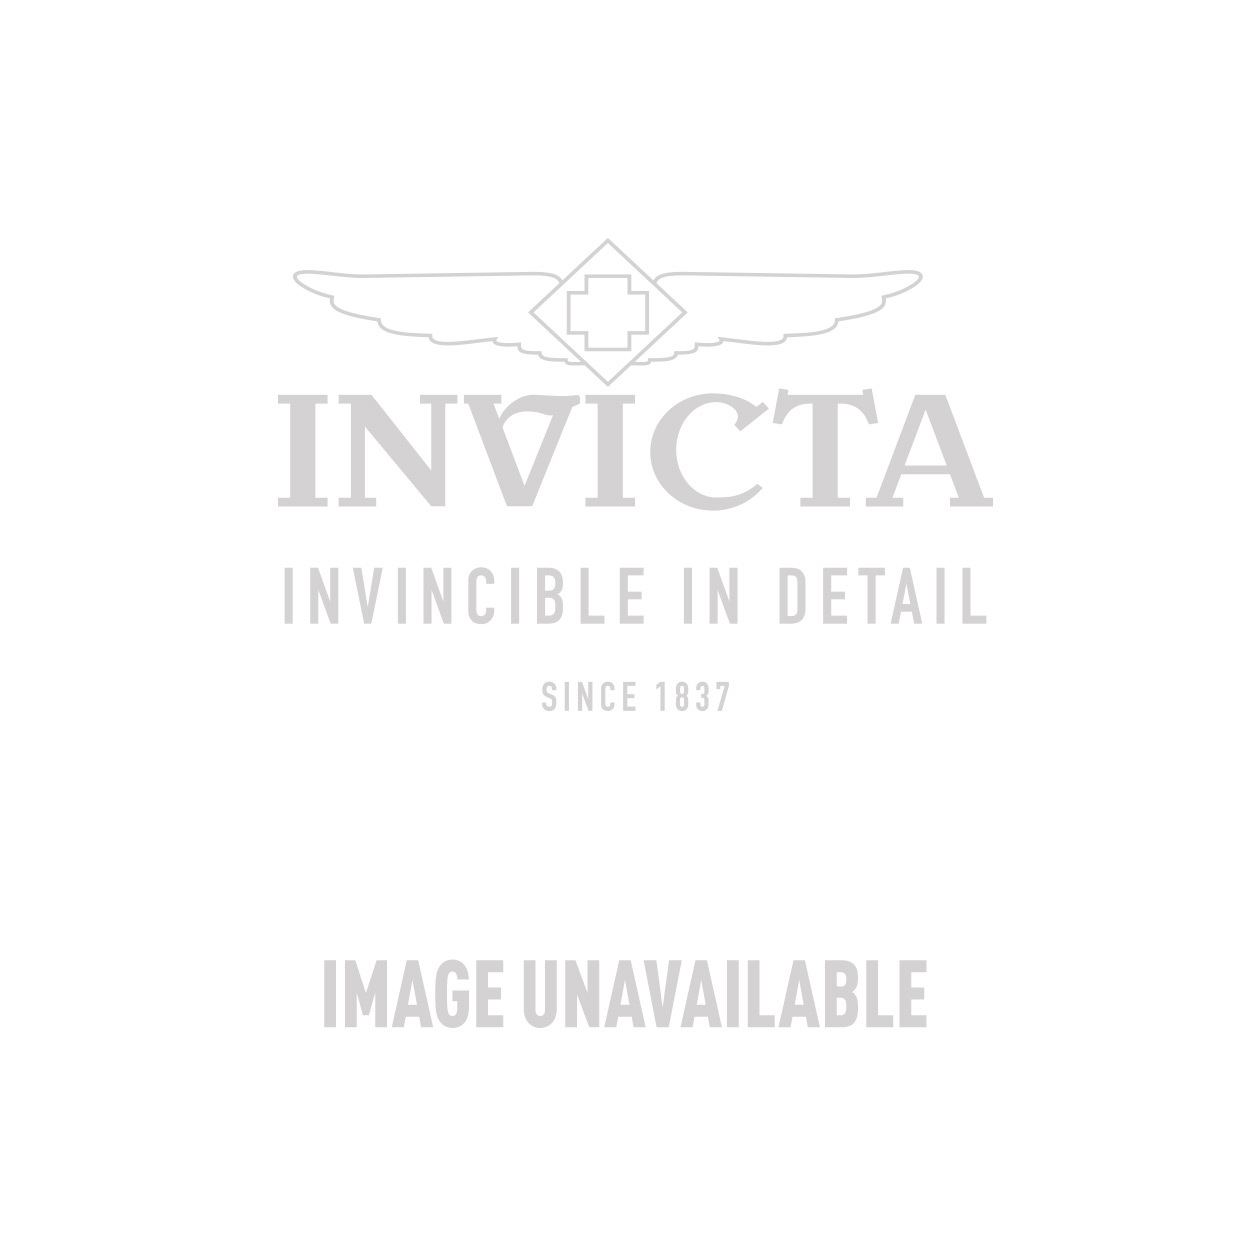 Invicta Coalition Forces Swiss Made Quartz Watch - Stainless Steel case Stainless Steel band - Model 14007